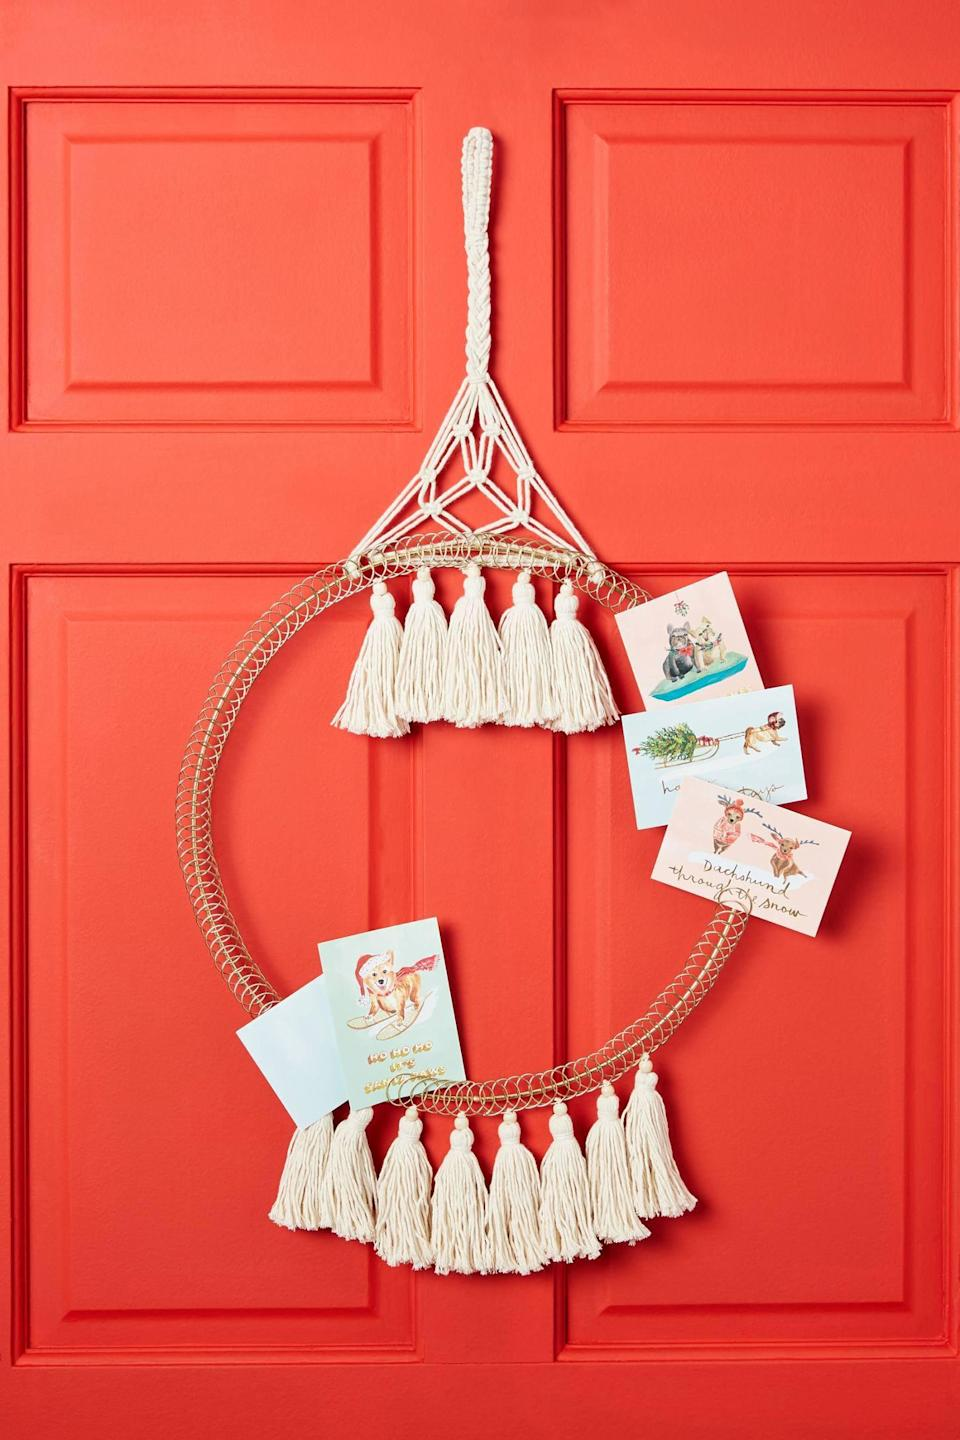 """<p>Use your holiday cards as decoration with the <a href=""""https://www.popsugar.com/buy/Macrame-Greeting-Card-Holder-490538?p_name=Macrame%20Greeting%20Card%20Holder&retailer=anthropologie.com&pid=490538&price=68&evar1=casa%3Aus&evar9=46615300&evar98=https%3A%2F%2Fwww.popsugar.com%2Fhome%2Fphoto-gallery%2F46615300%2Fimage%2F46615409%2FMacrame-Greeting-Card-Holder&list1=shopping%2Canthropologie%2Choliday%2Cchristmas%2Cchristmas%20decorations%2Choliday%20decor%2Chome%20shopping&prop13=mobile&pdata=1"""" rel=""""nofollow noopener"""" class=""""link rapid-noclick-resp"""" target=""""_blank"""" data-ylk=""""slk:Macrame Greeting Card Holder"""">Macrame Greeting Card Holder</a> ($68).</p>"""